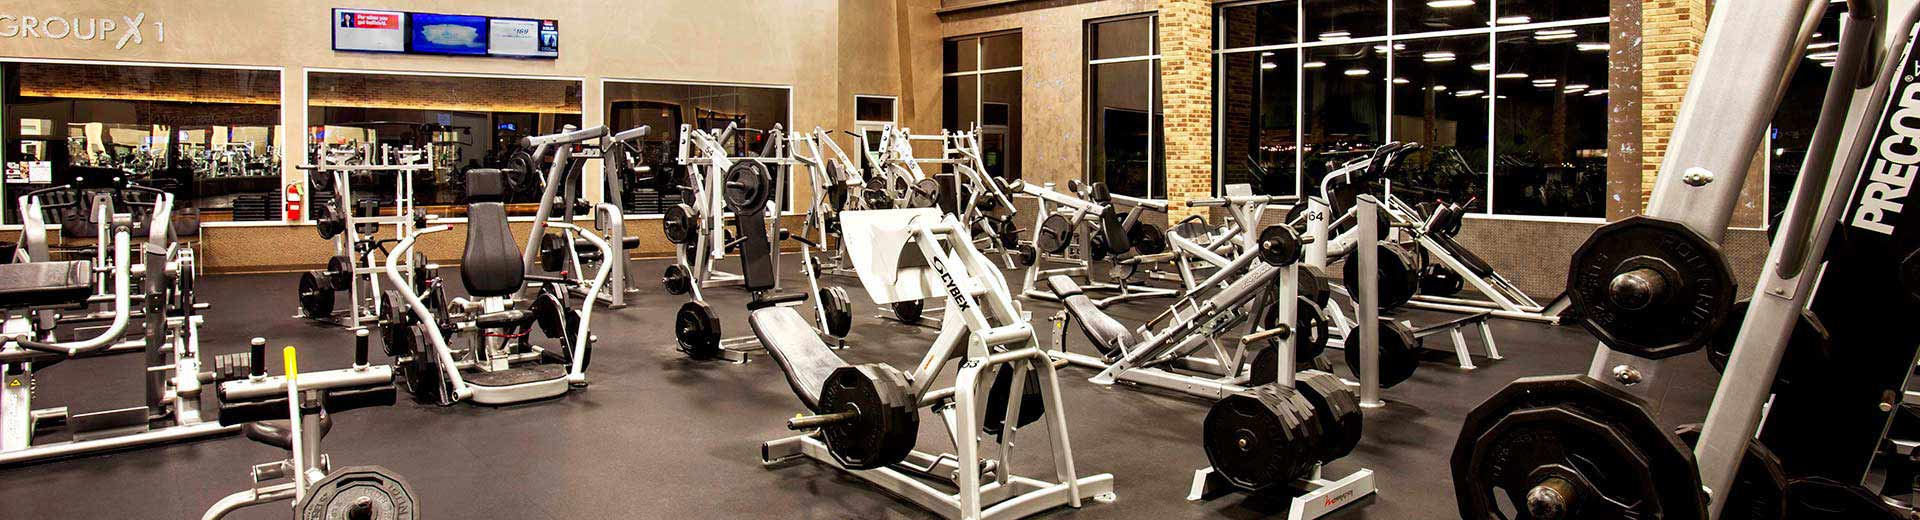 skokie, il gym amenities | xsport fitness